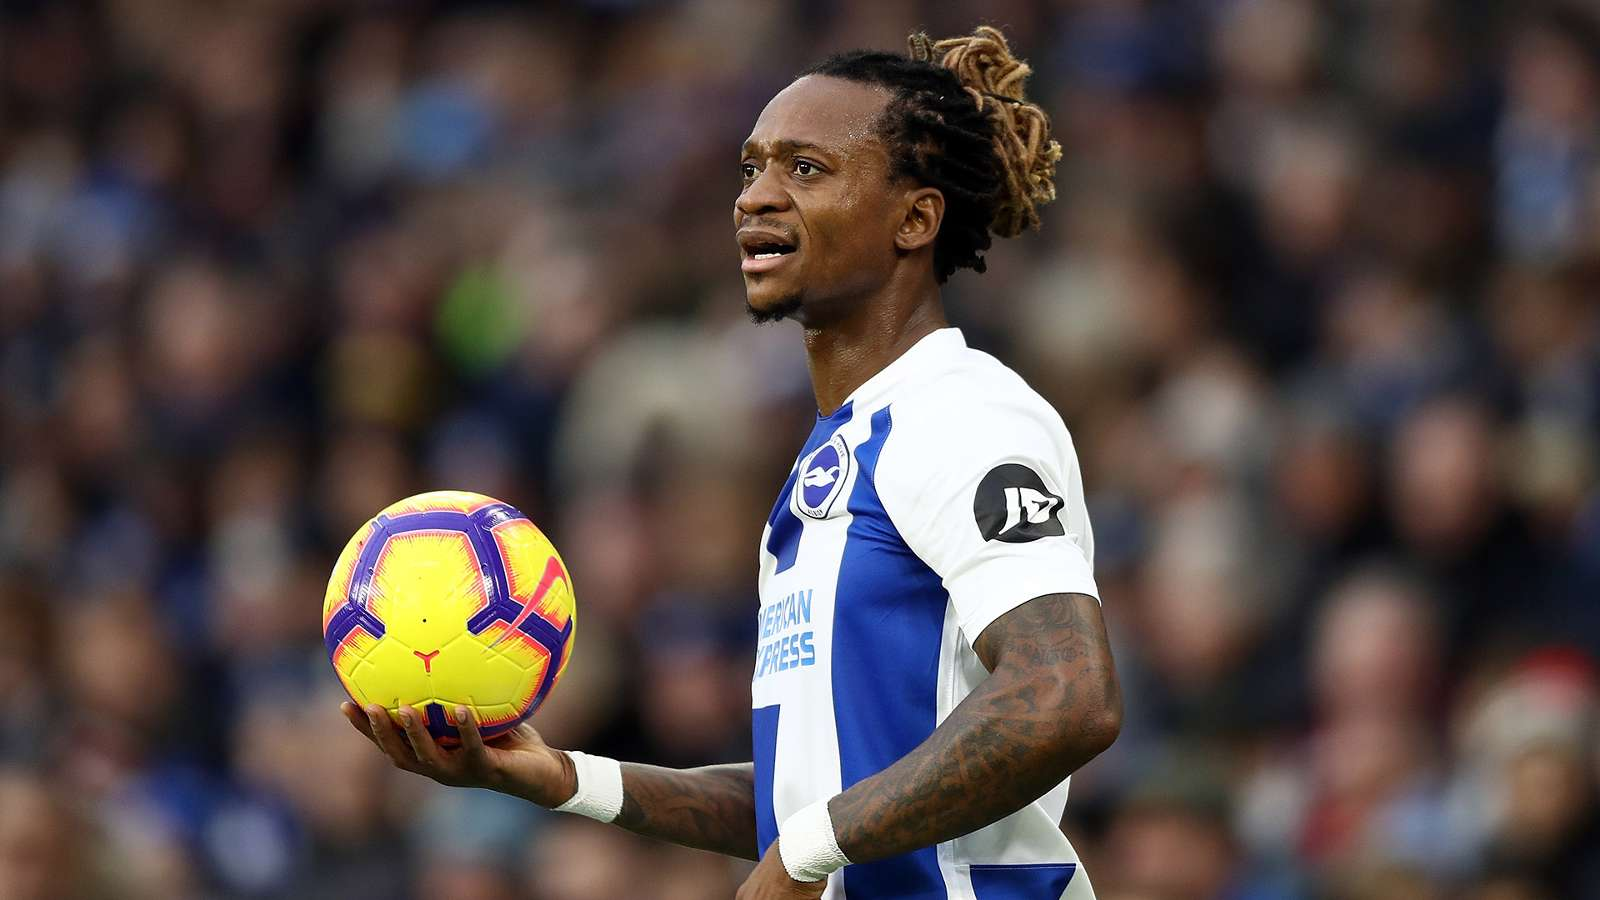 Premier League: Gaetan Bong extends Brighton and Hove Albion's stay